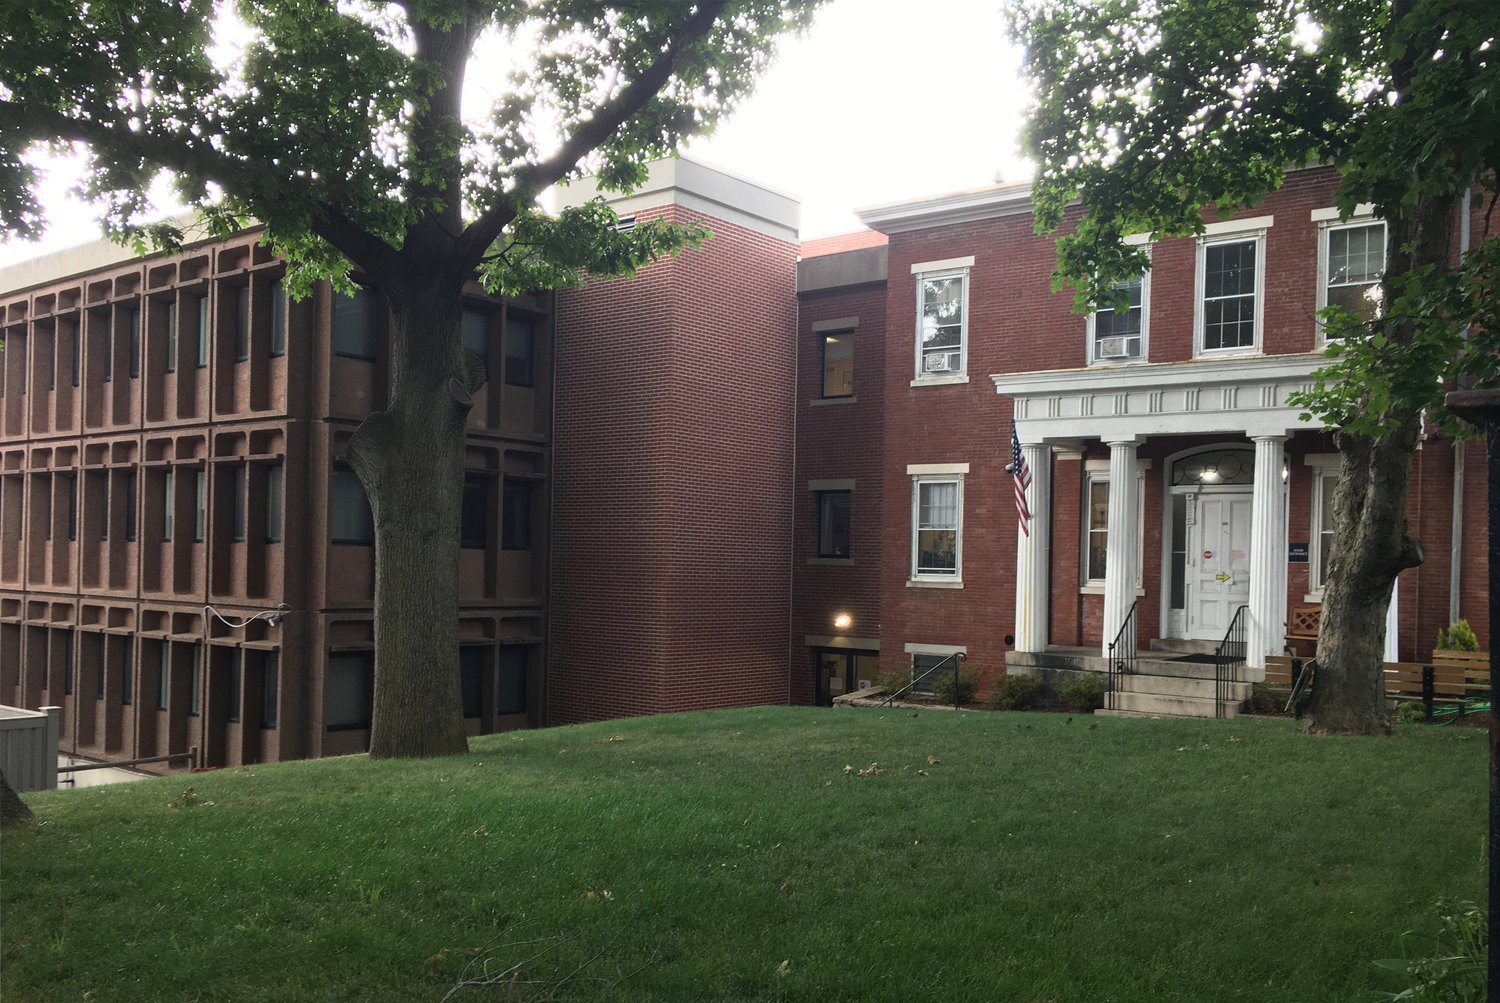 Hallworth House, a 57-bed nursing home on Benefit Street, Providence, plans to close by the end of August. LYNN ARDITI/THE PUBLIC'S RADIO